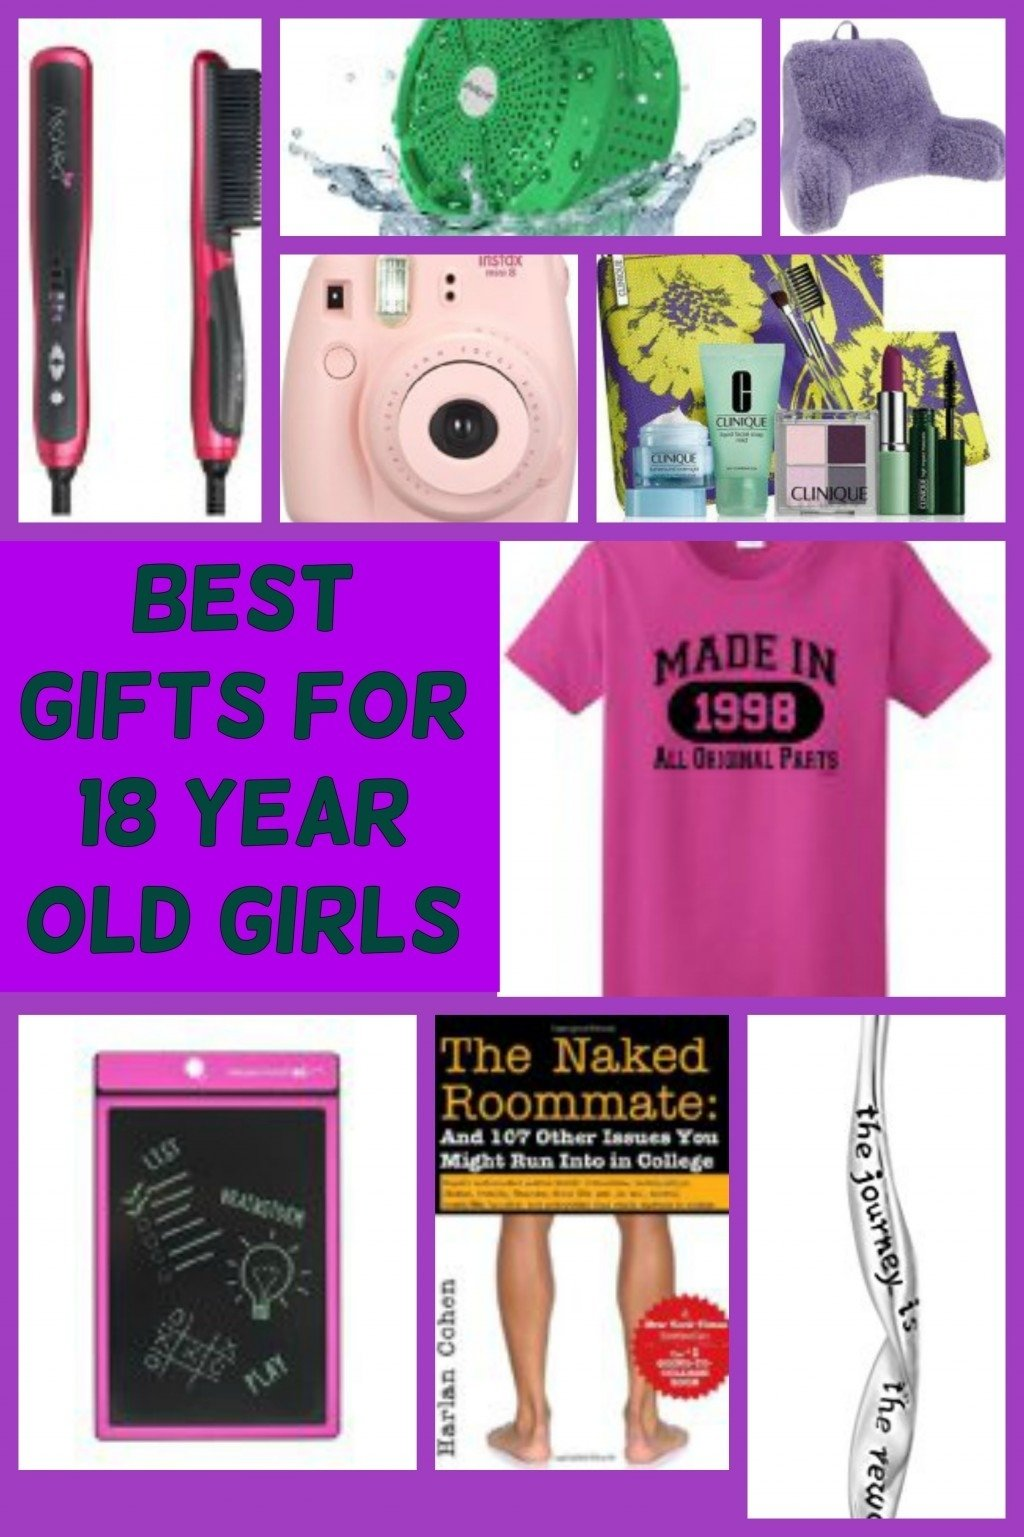 10 Lovely 18 Year Old Christmas Gift Ideas popular birthday and christmas gift ideas for 18 year old girls 2 2021